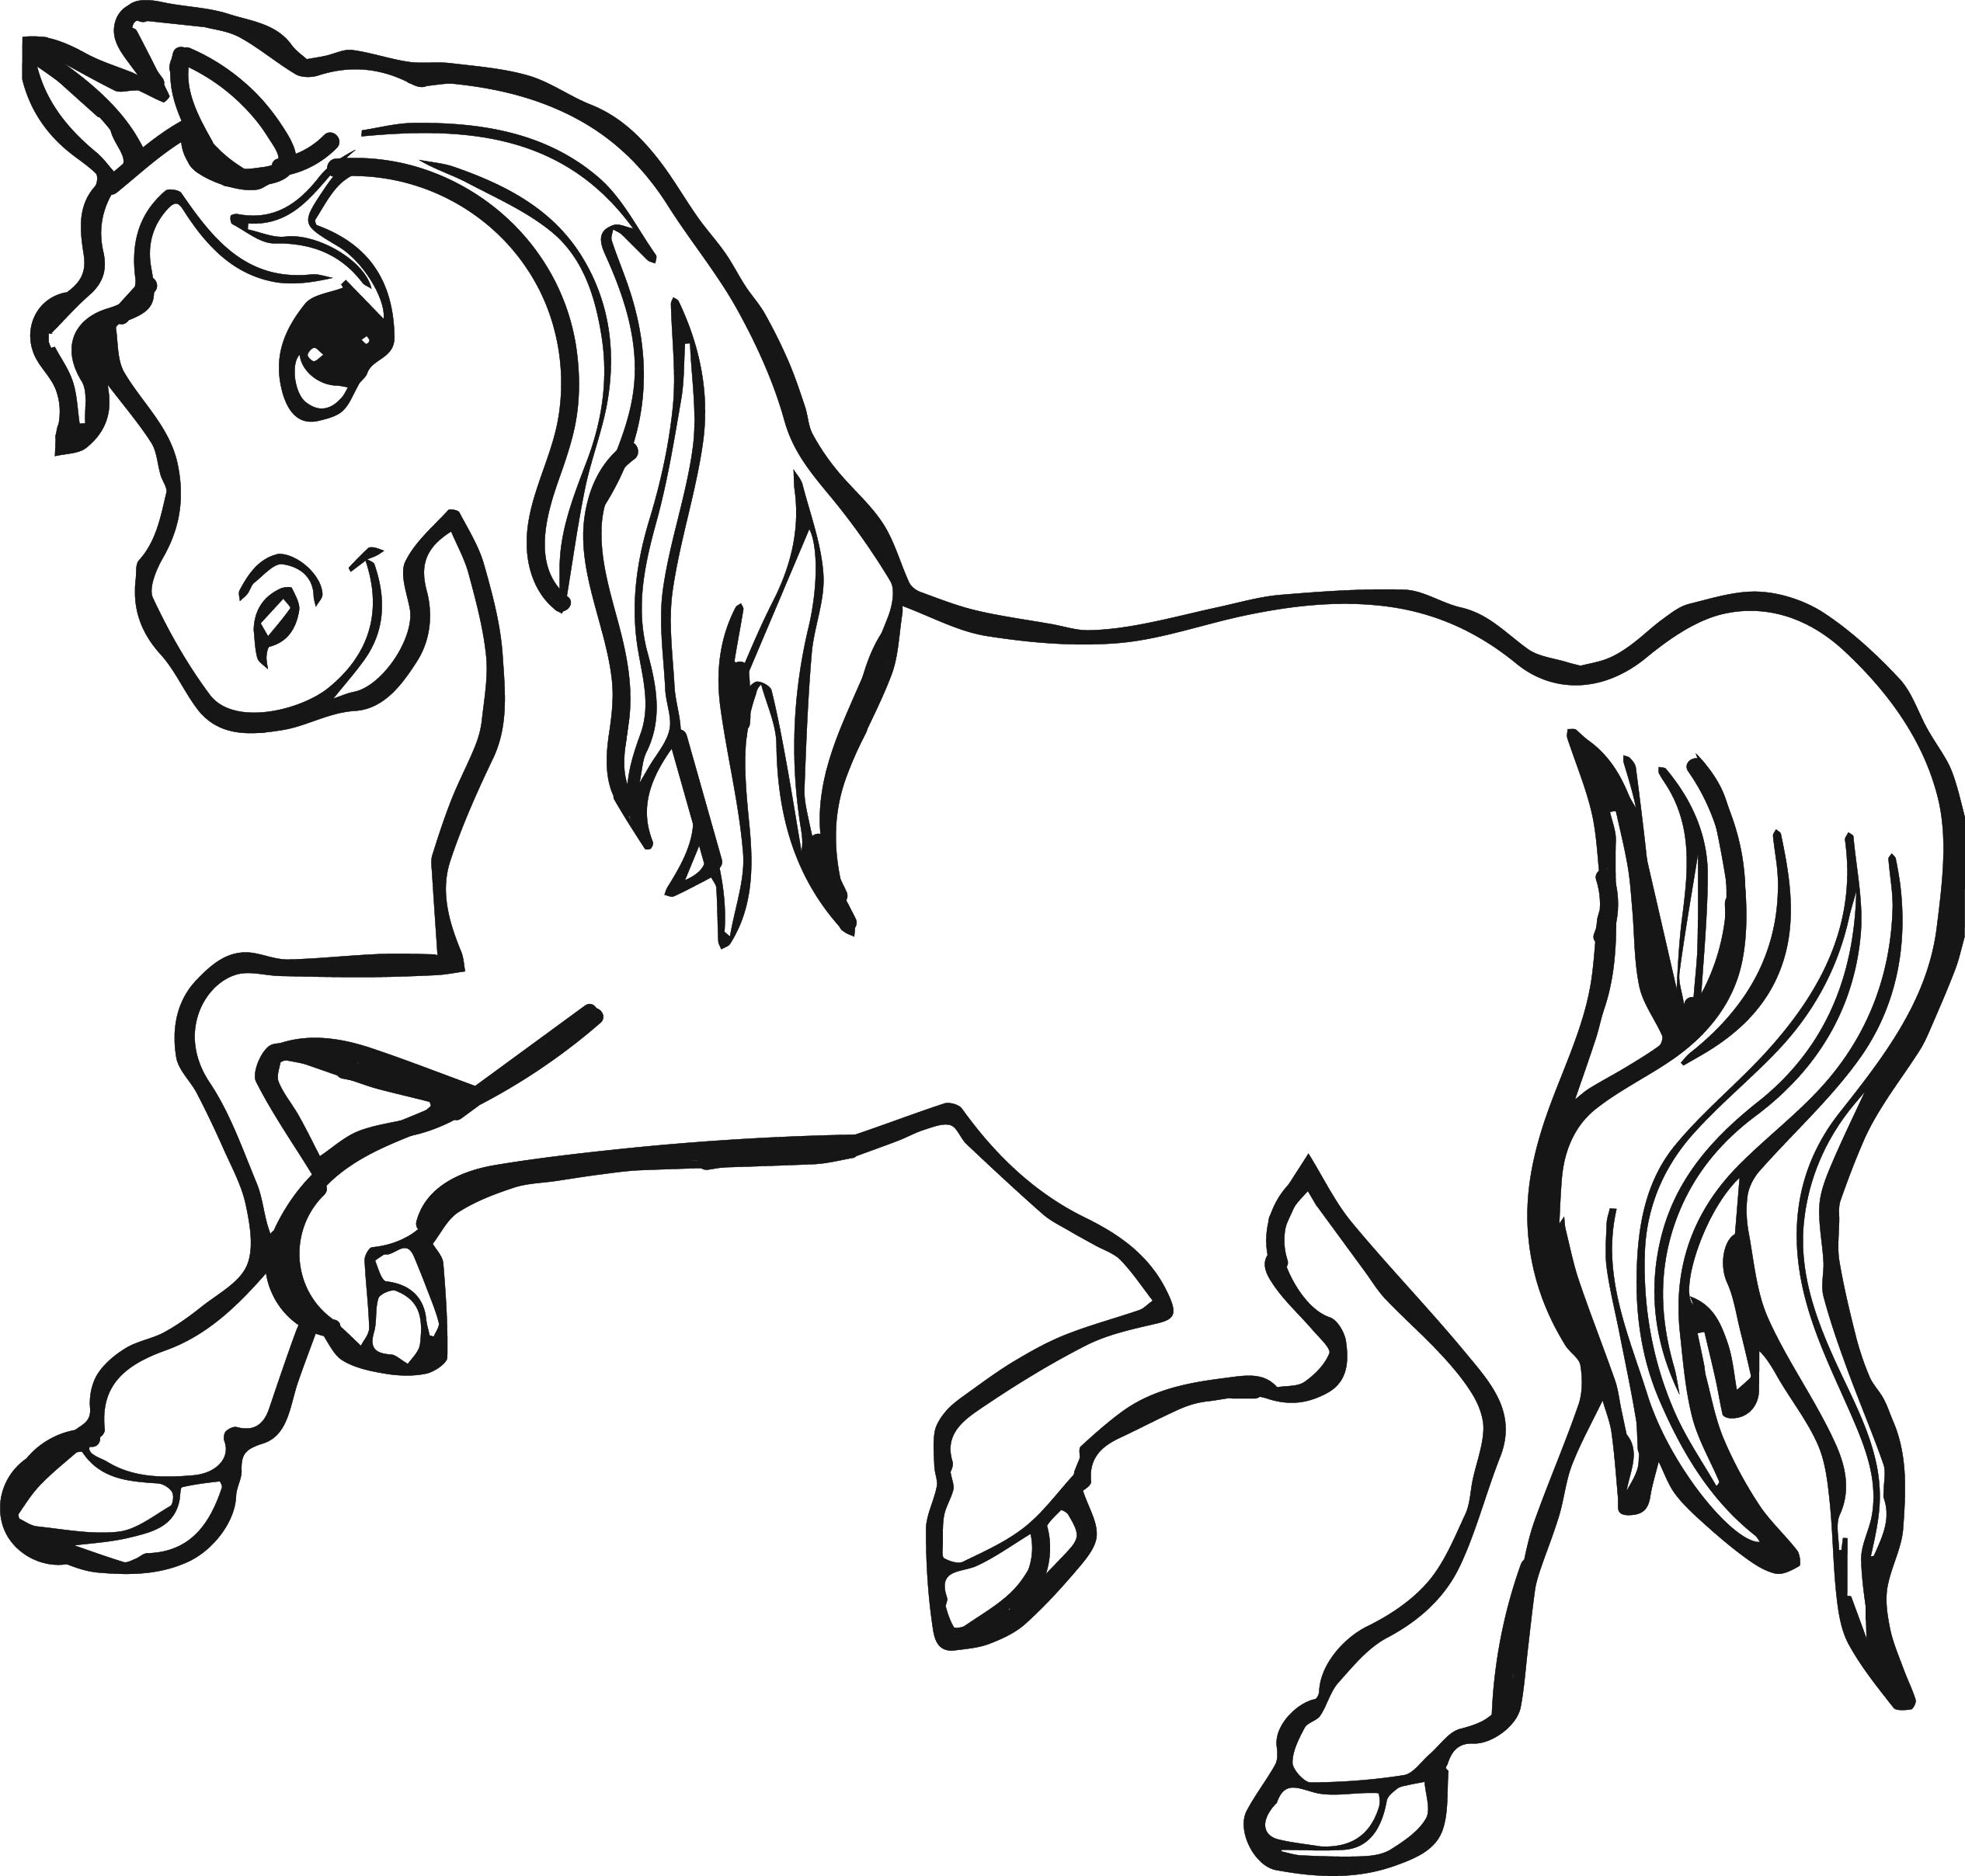 horse coloring pages for girls 29 real horse coloring pages to print collection girls coloring pages horse for